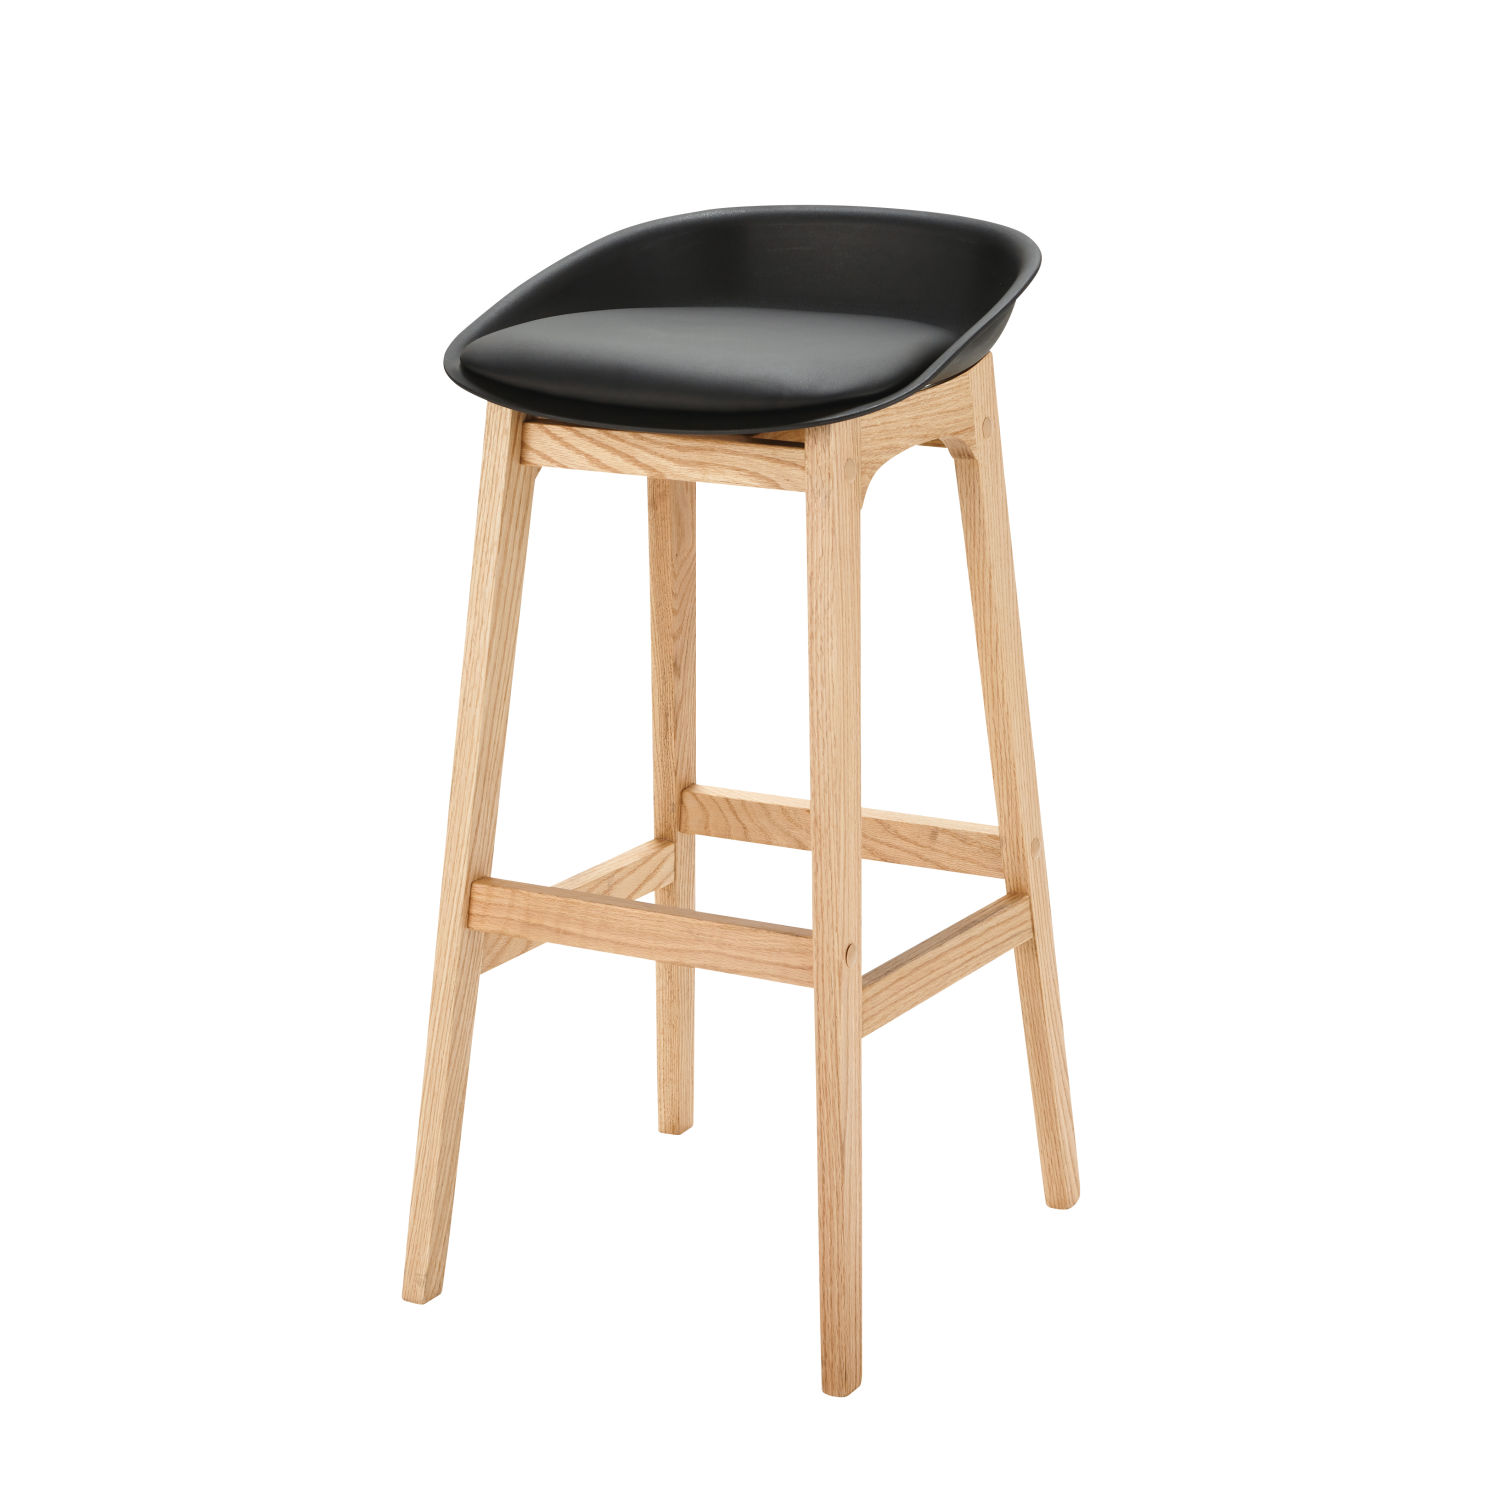 tabouret de bar style scandinave noir et ch ne massif h88 maisons du monde. Black Bedroom Furniture Sets. Home Design Ideas